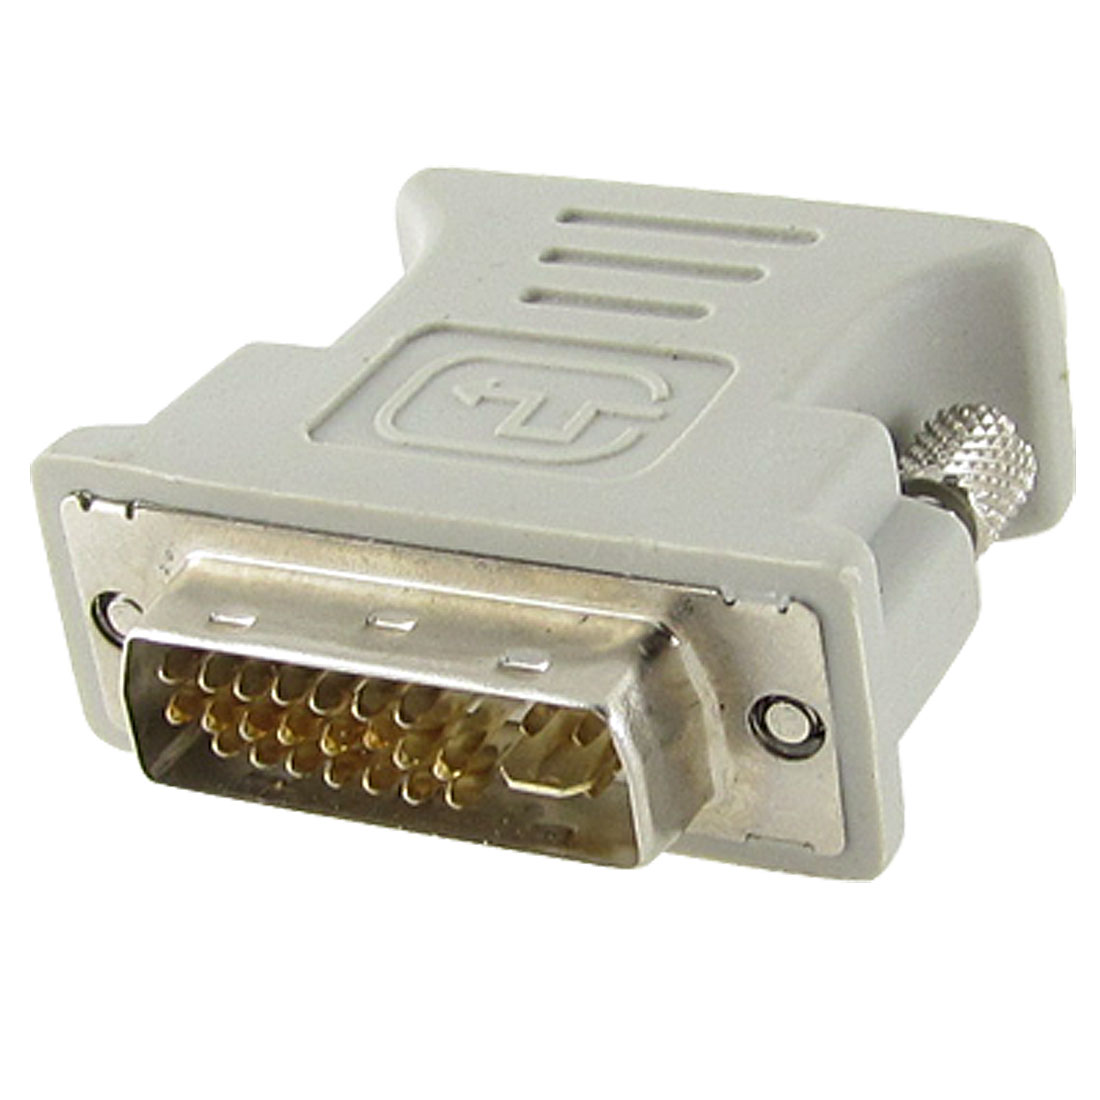 DVI-I 24+5 Pin Male Dual Link to Female VGA Converter Adapter